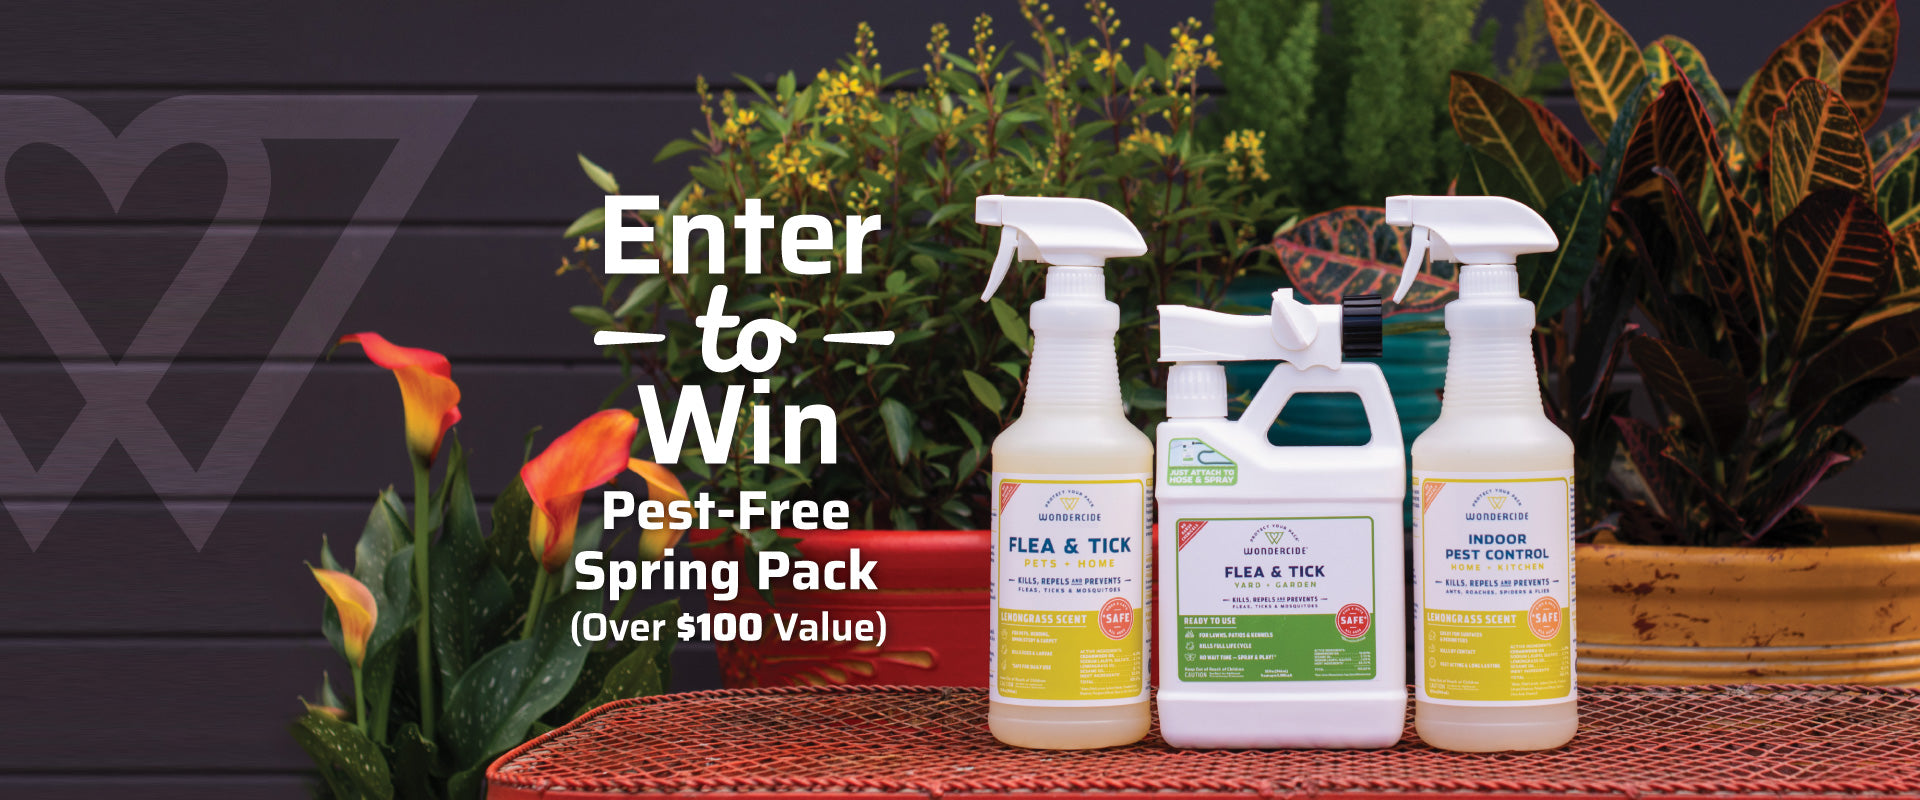 Enter to Win Pest-Free Spring Pack